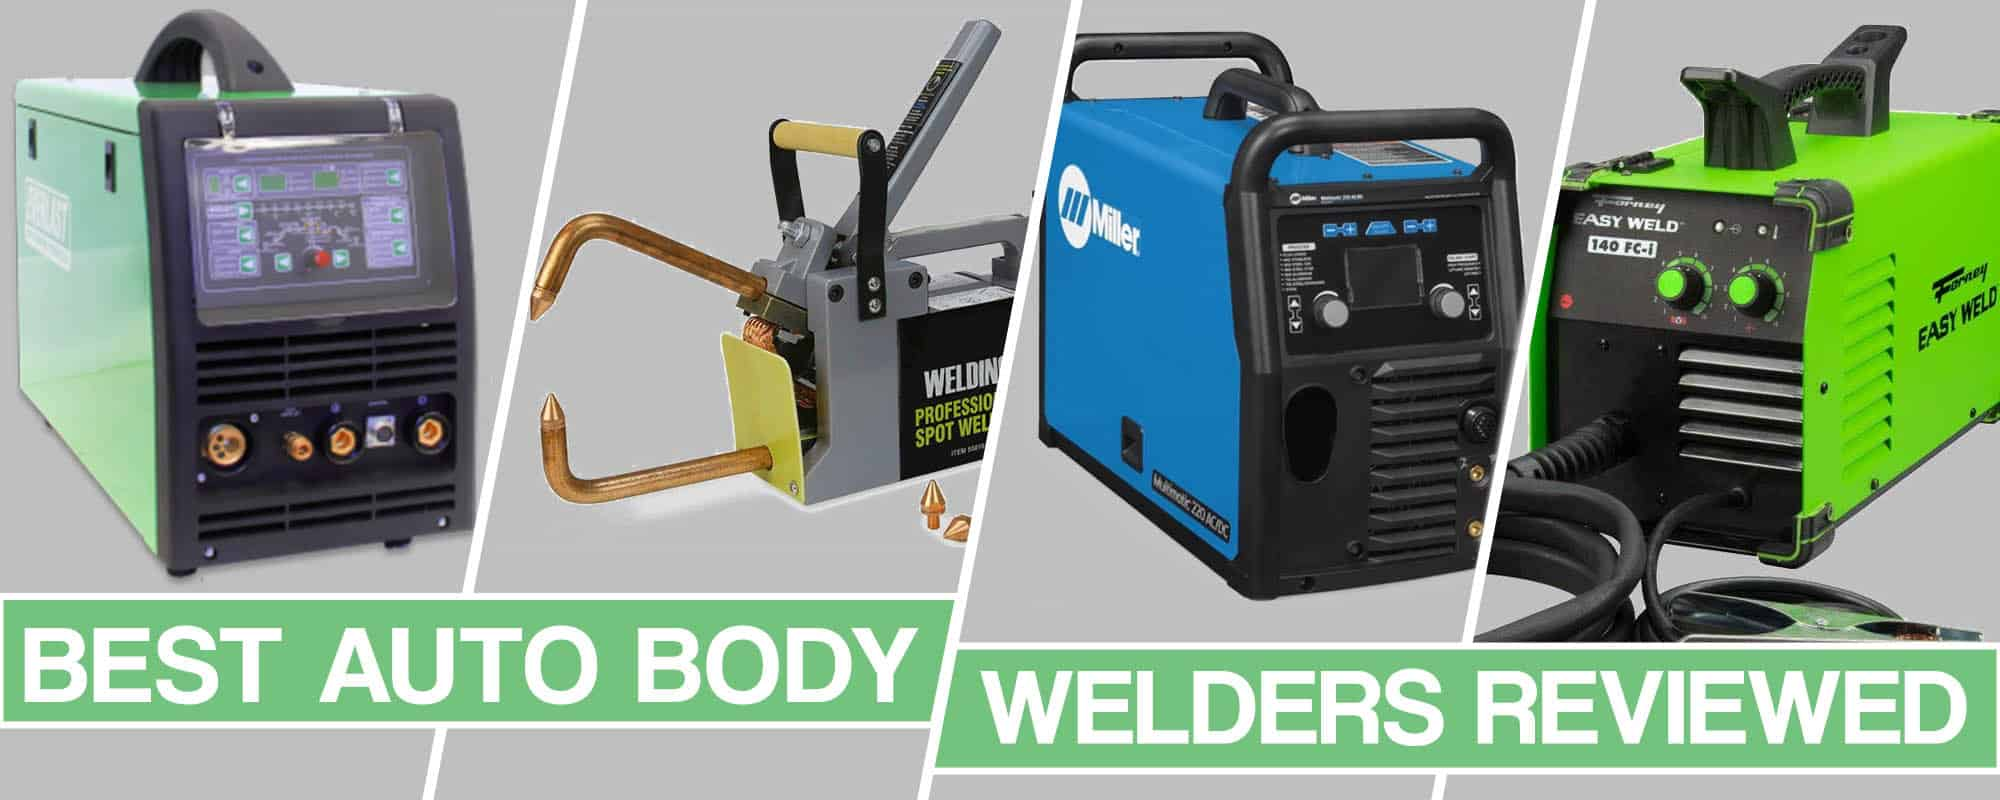 Best Welder For Auto Body Work Sheet Metal And Car Panels